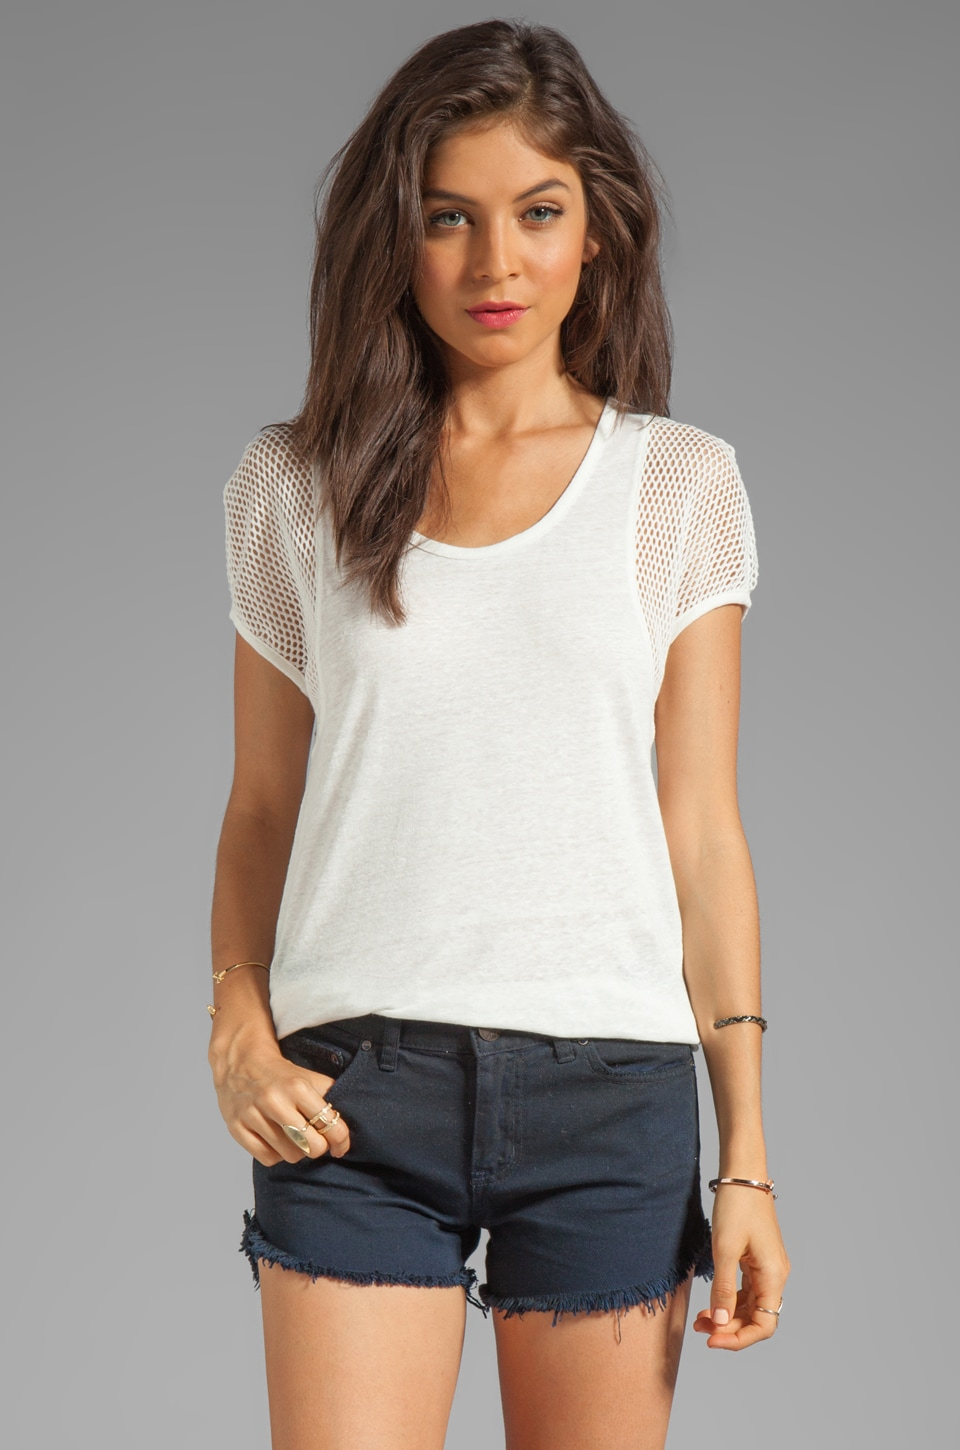 Marc by Marc Jacobs Texture Tee Linen Top in Marshmallow